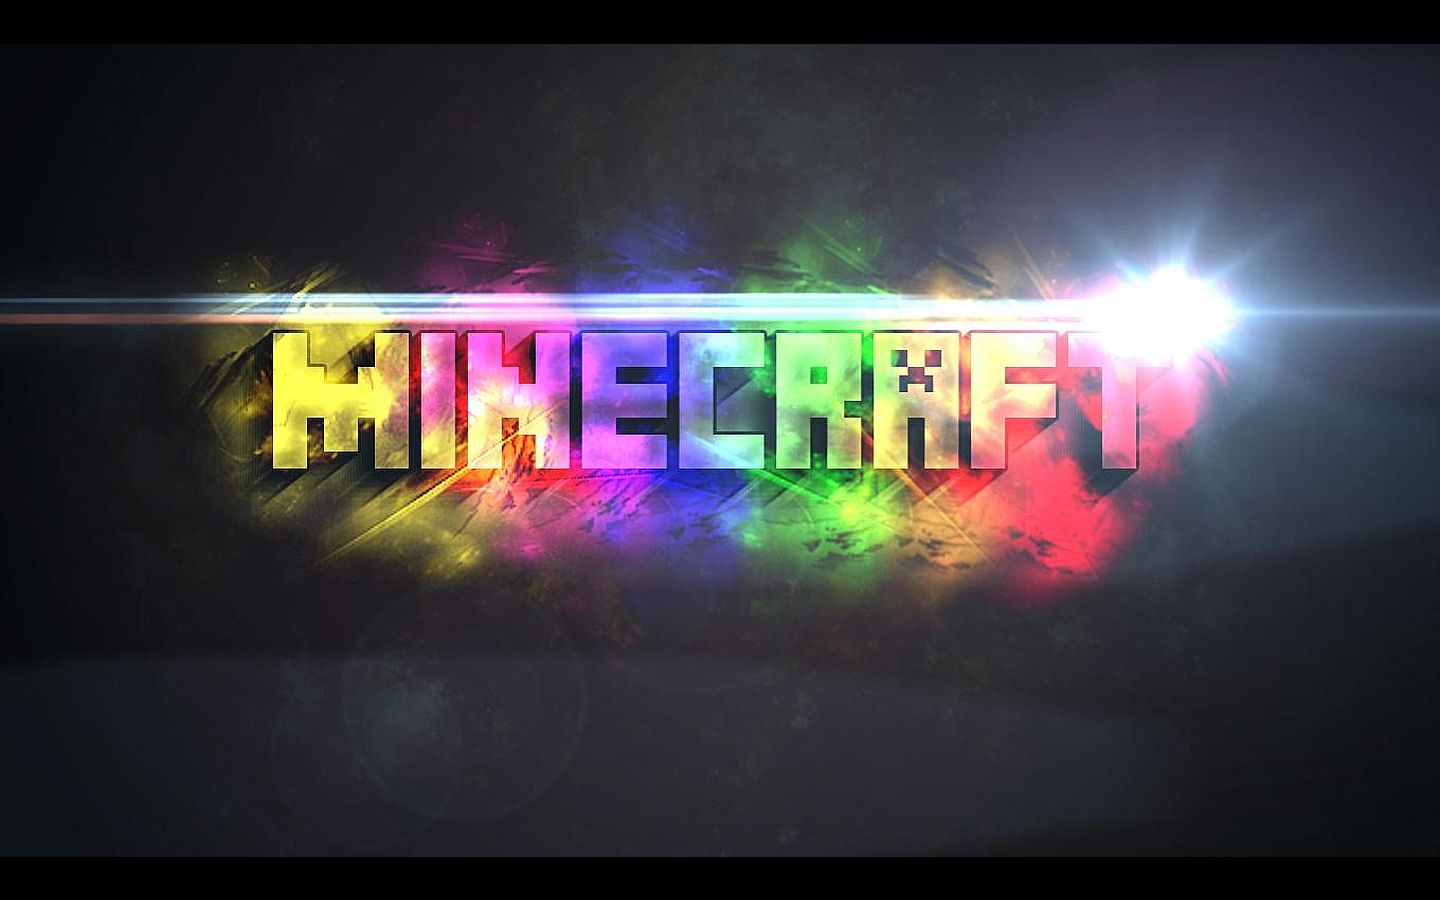 Minecraft Wallpaper: Download Desktop Minecraft Wallpaper ...